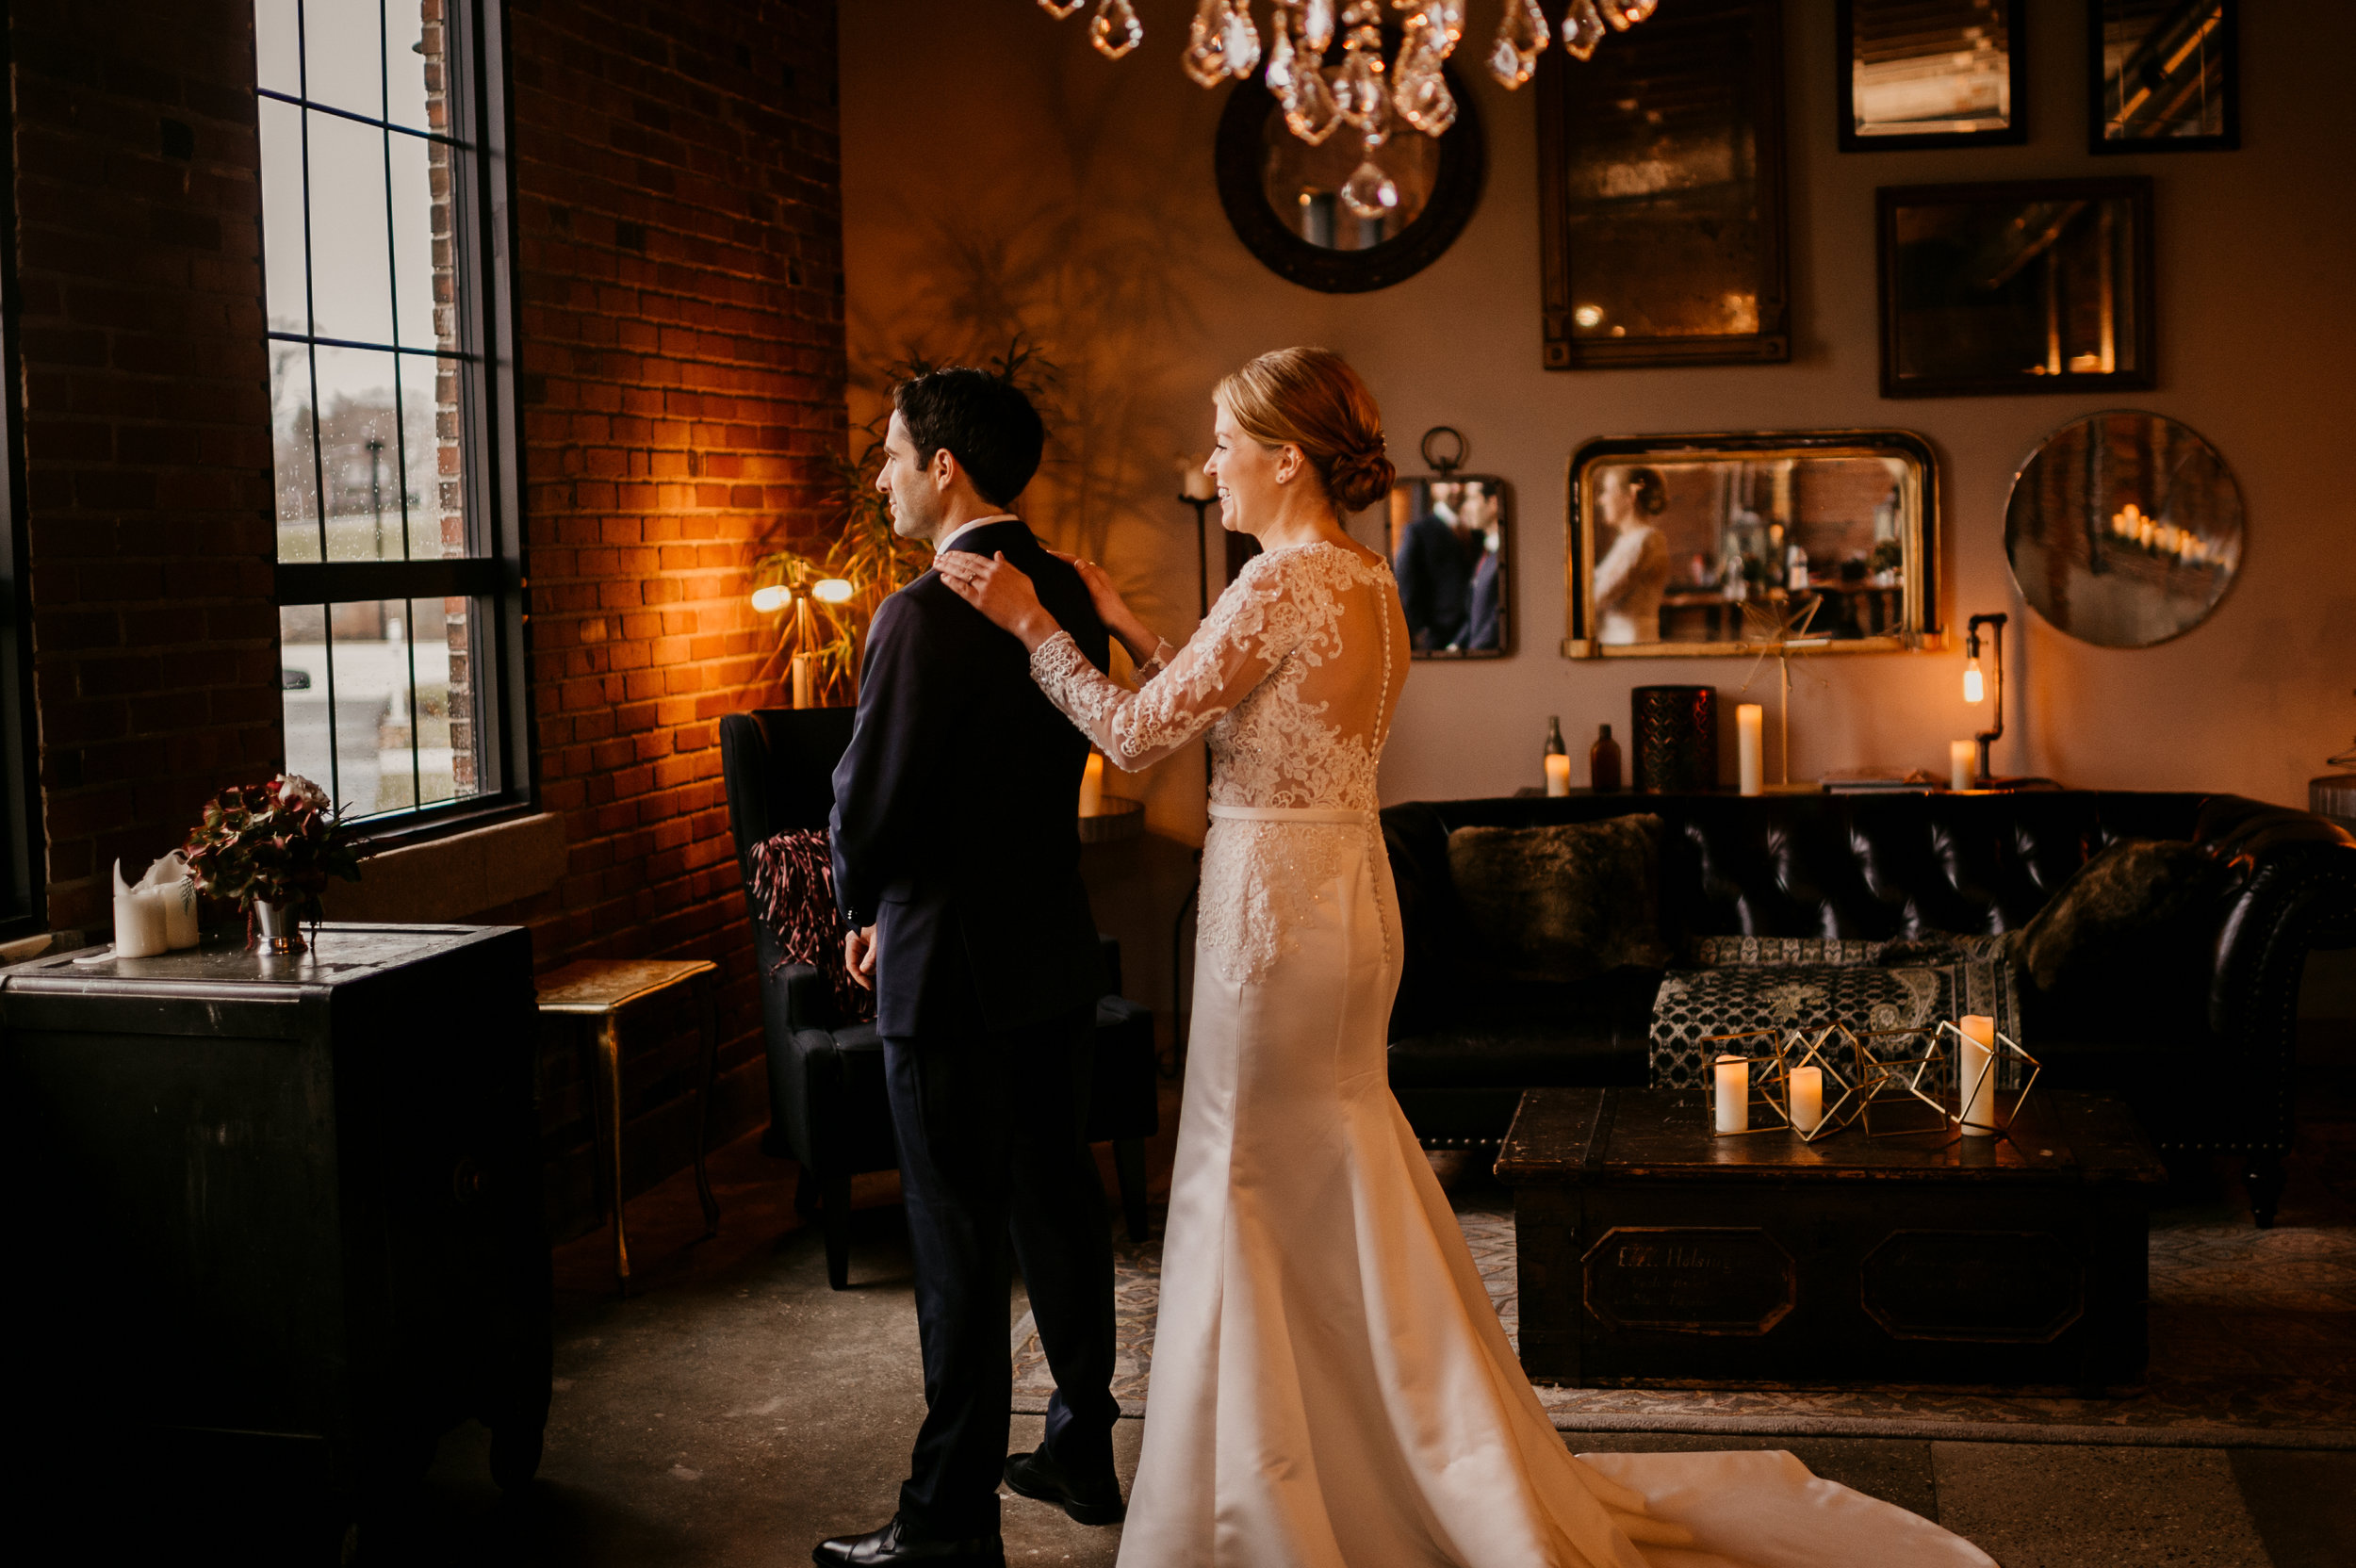 The Armory South Bend Indiana Wedding - Chicago Wedding Photographe